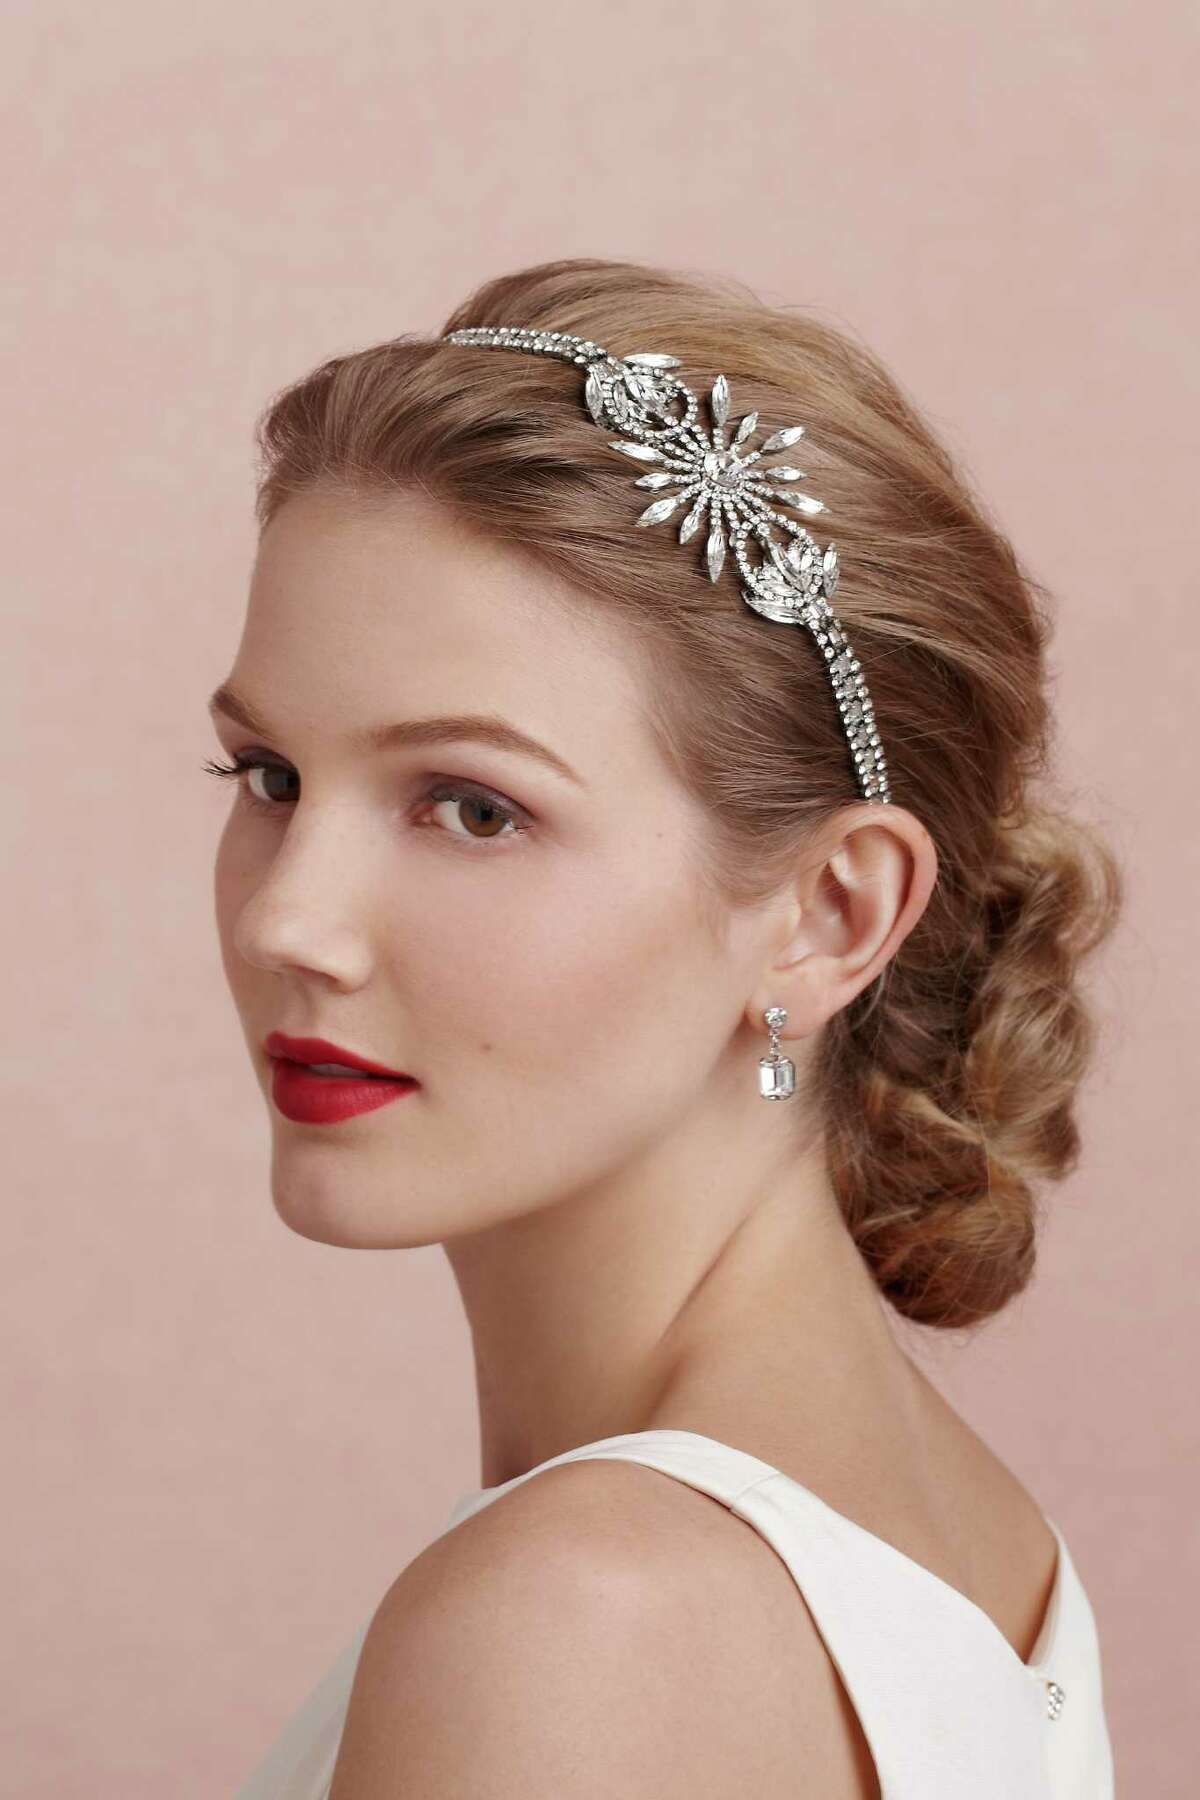 Hair raising: Twinkle at any party with a silver and Swarovski crystal hair ornament by Erickson Beamon; $420 at BHLDN.